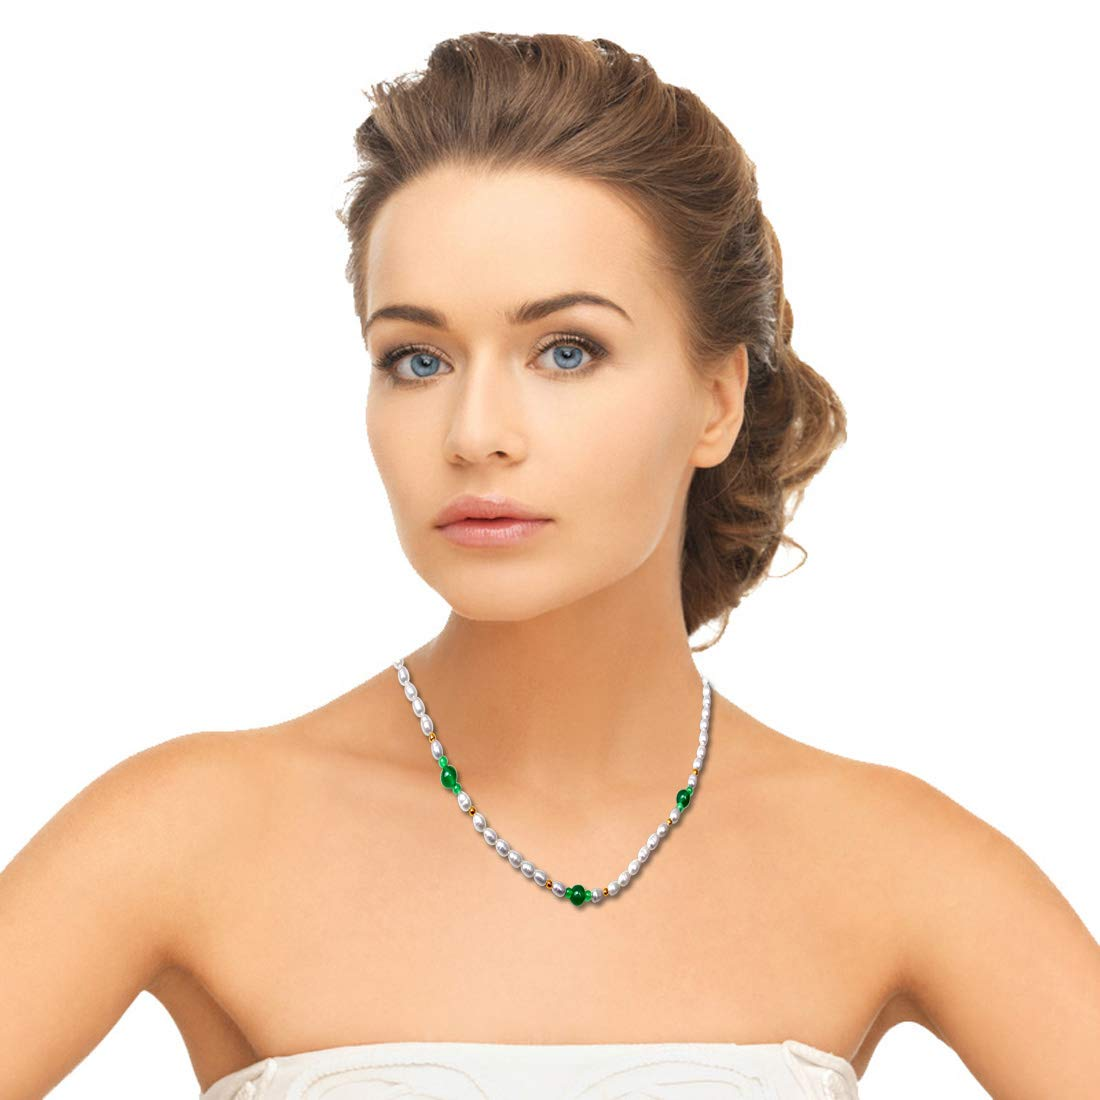 Green n Graceful - Real Rice Pearl & Green Onyx Beads Necklace for Women (SN240)